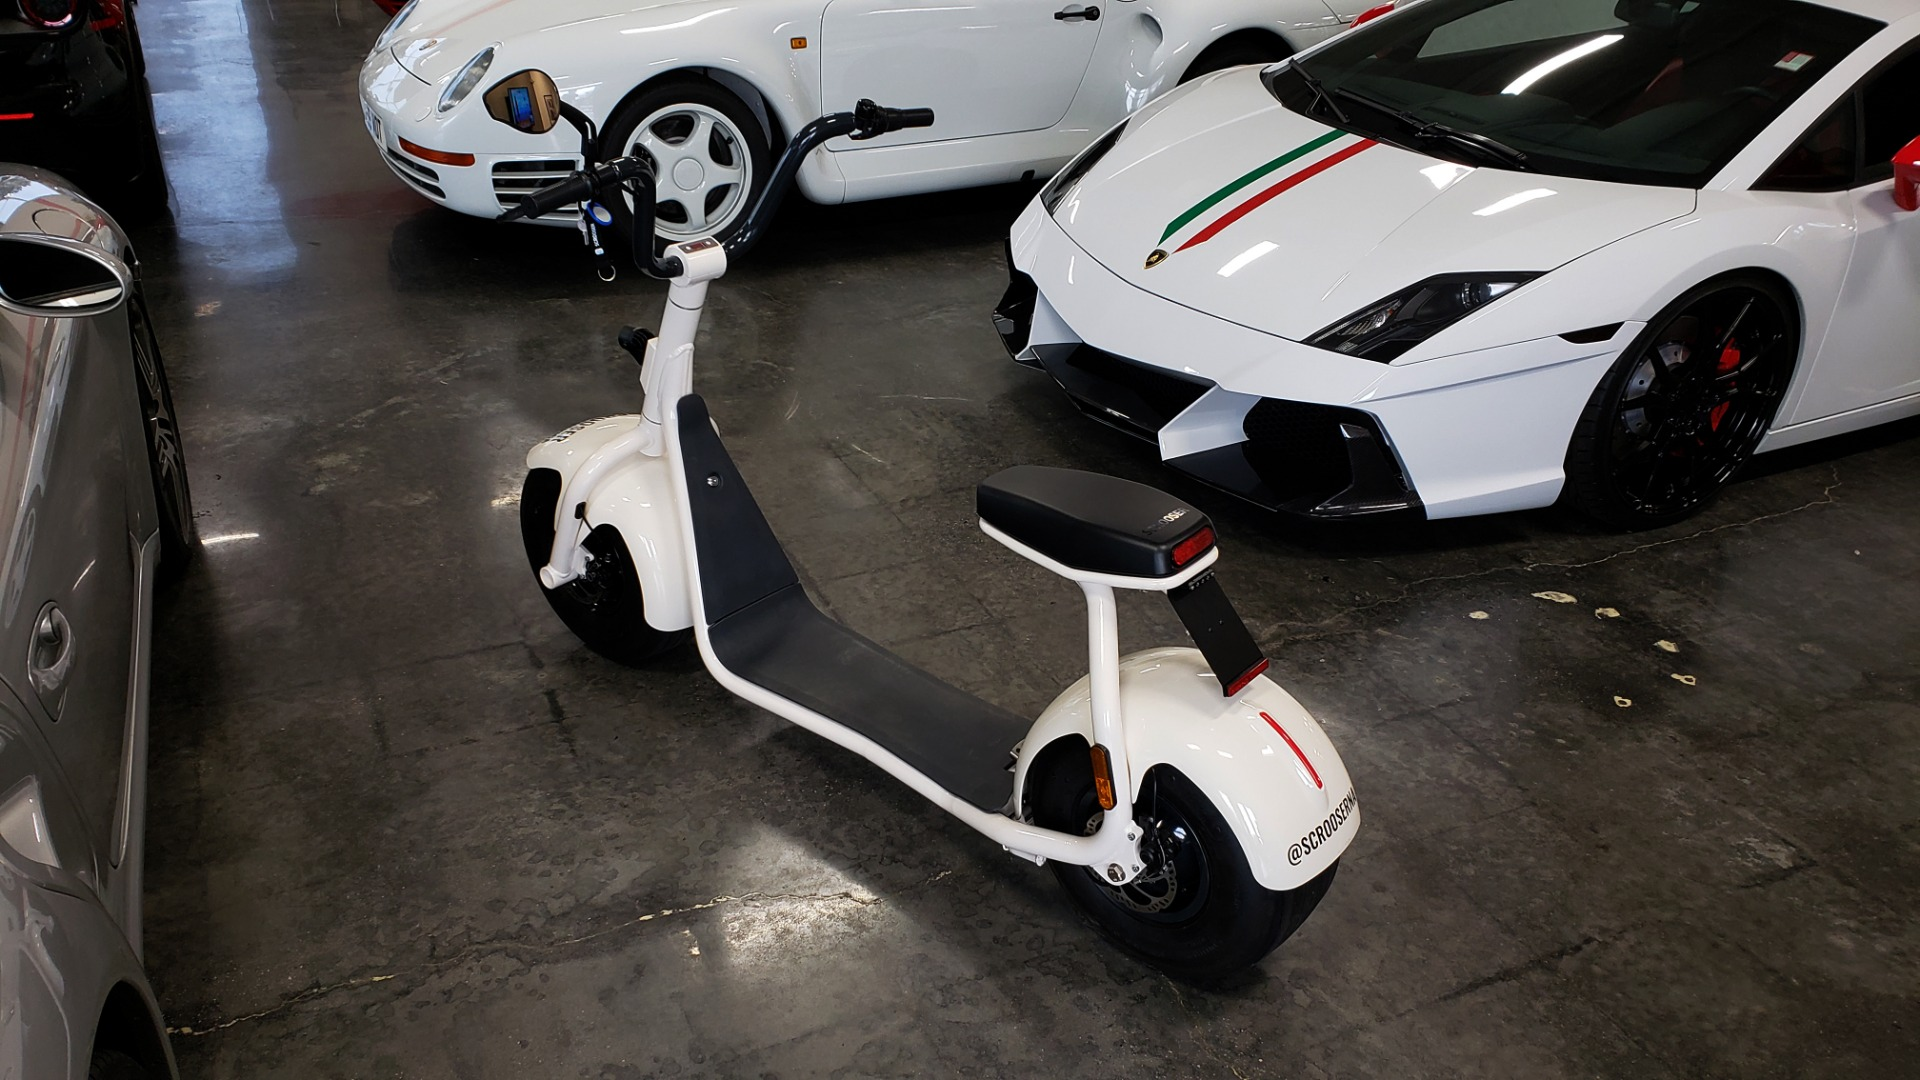 Used 2018 SCROOSER ELECTRIC SCOOTER SELF BALANCED / FOAM WHITE / 15.5 MPH / 34 MI RANGE for sale $1,699 at Formula Imports in Charlotte NC 28227 5